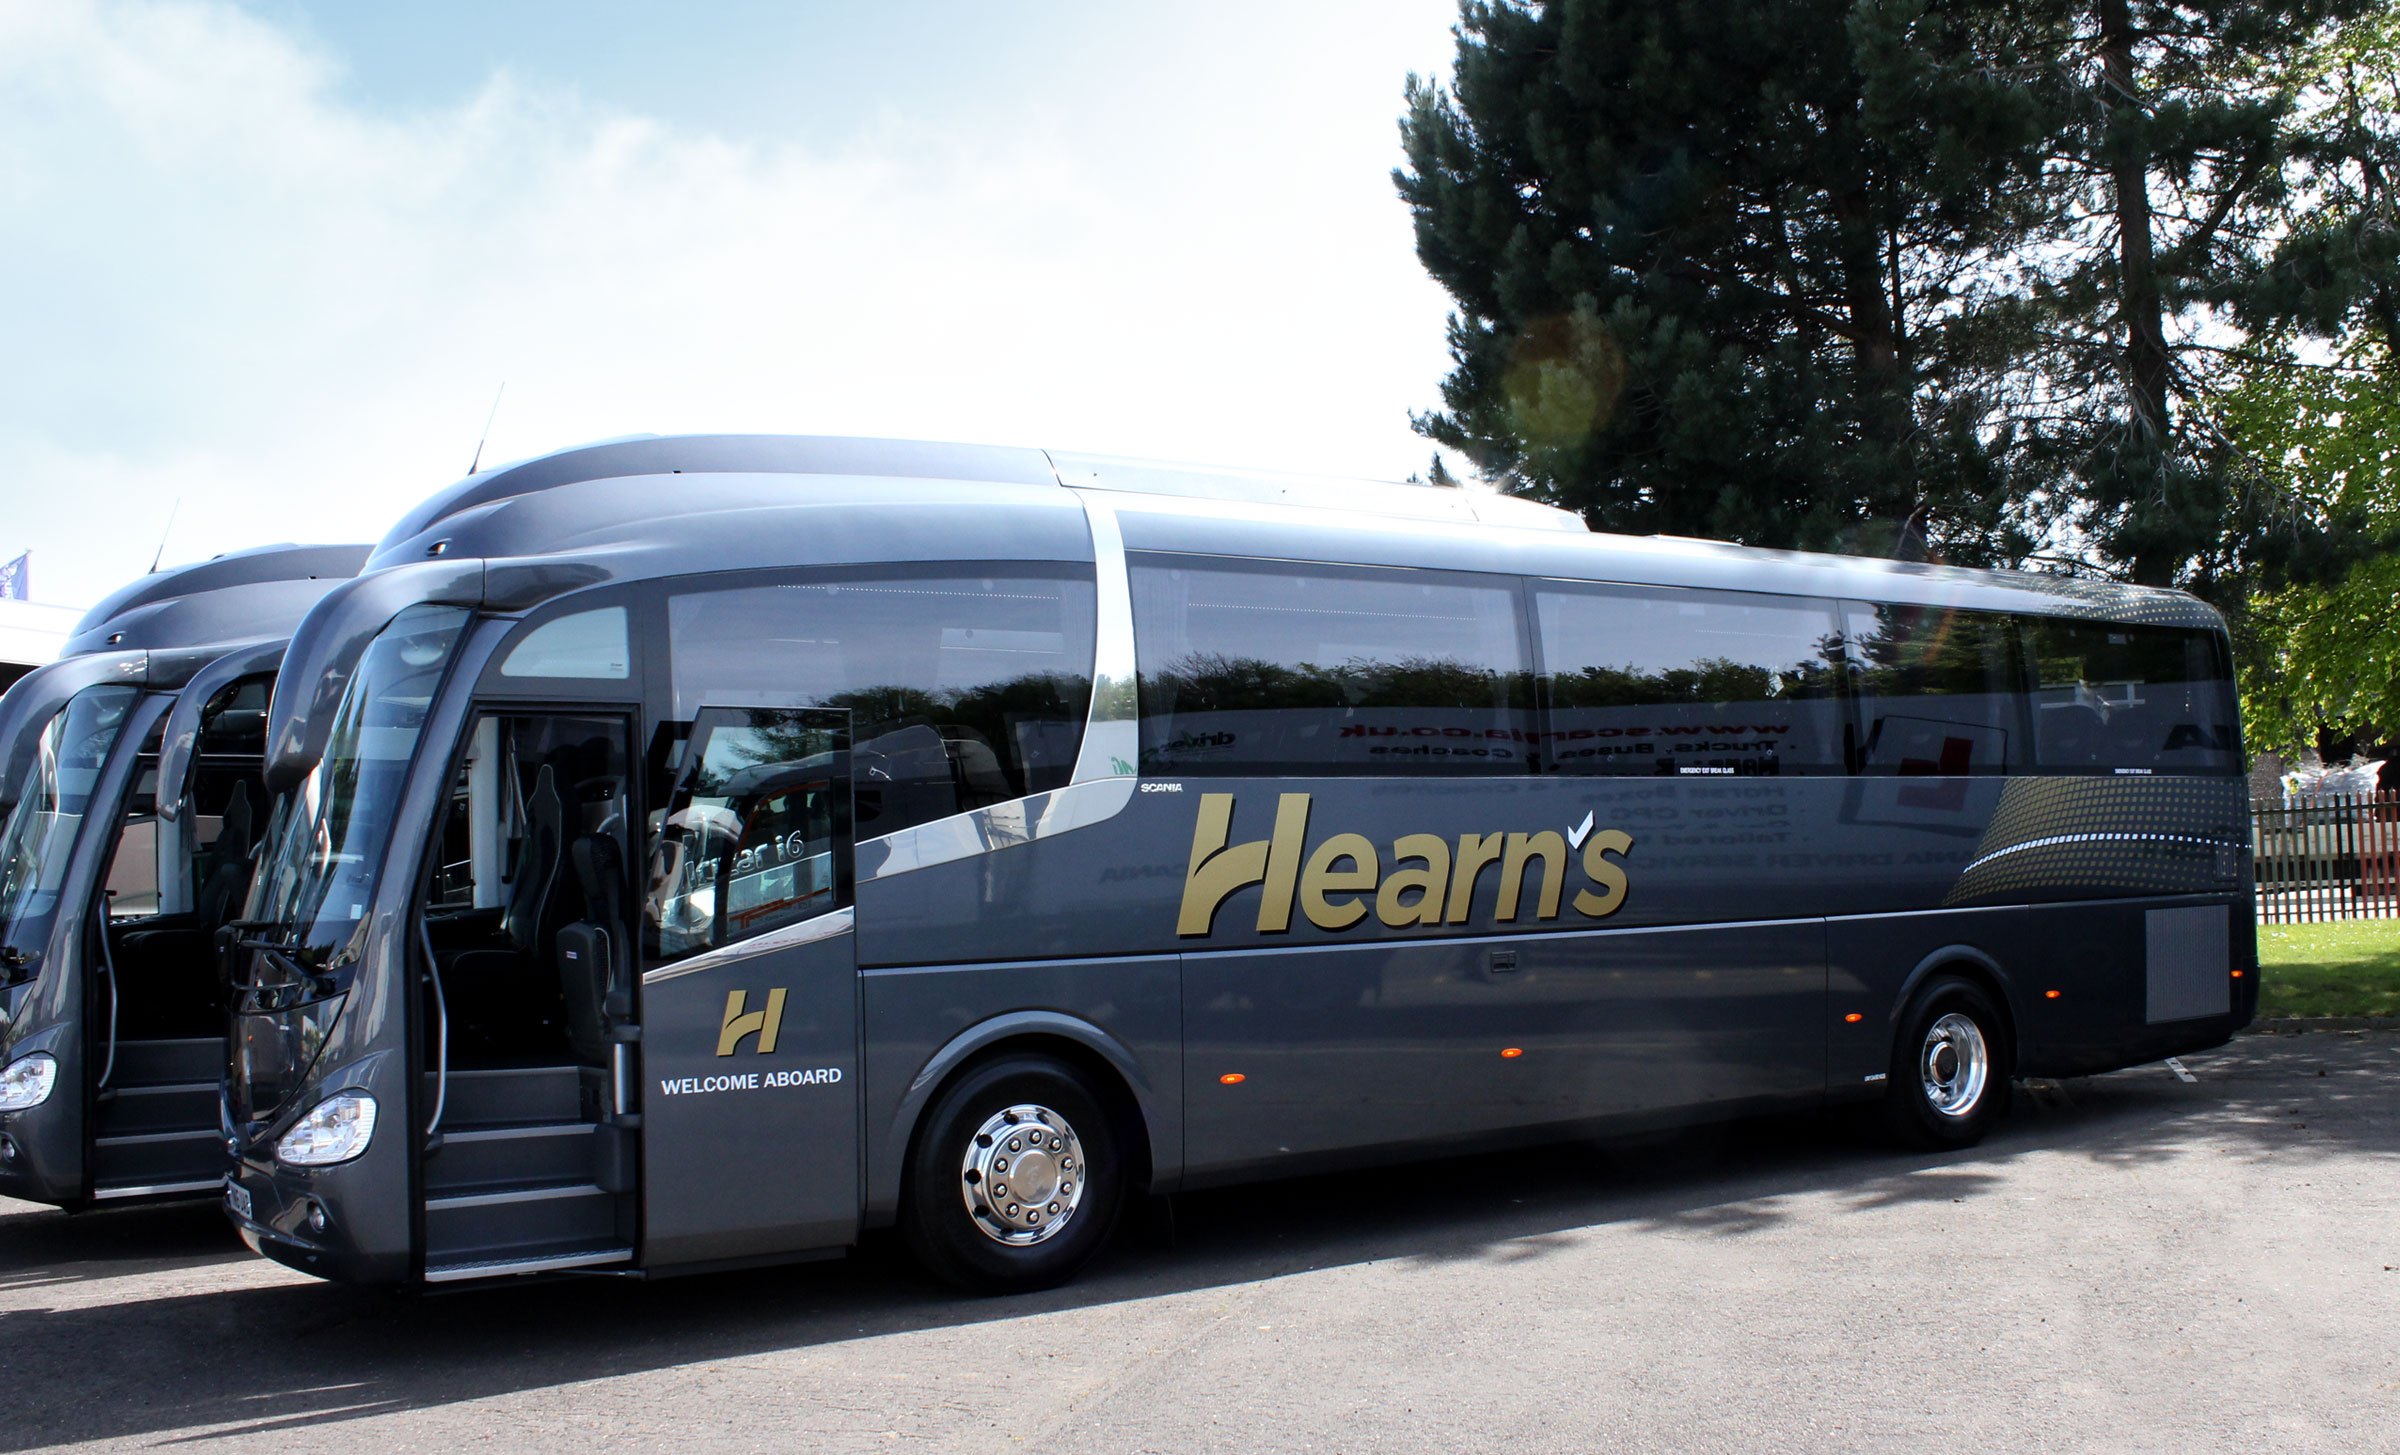 Hearns Coaches vehicle livery on coach